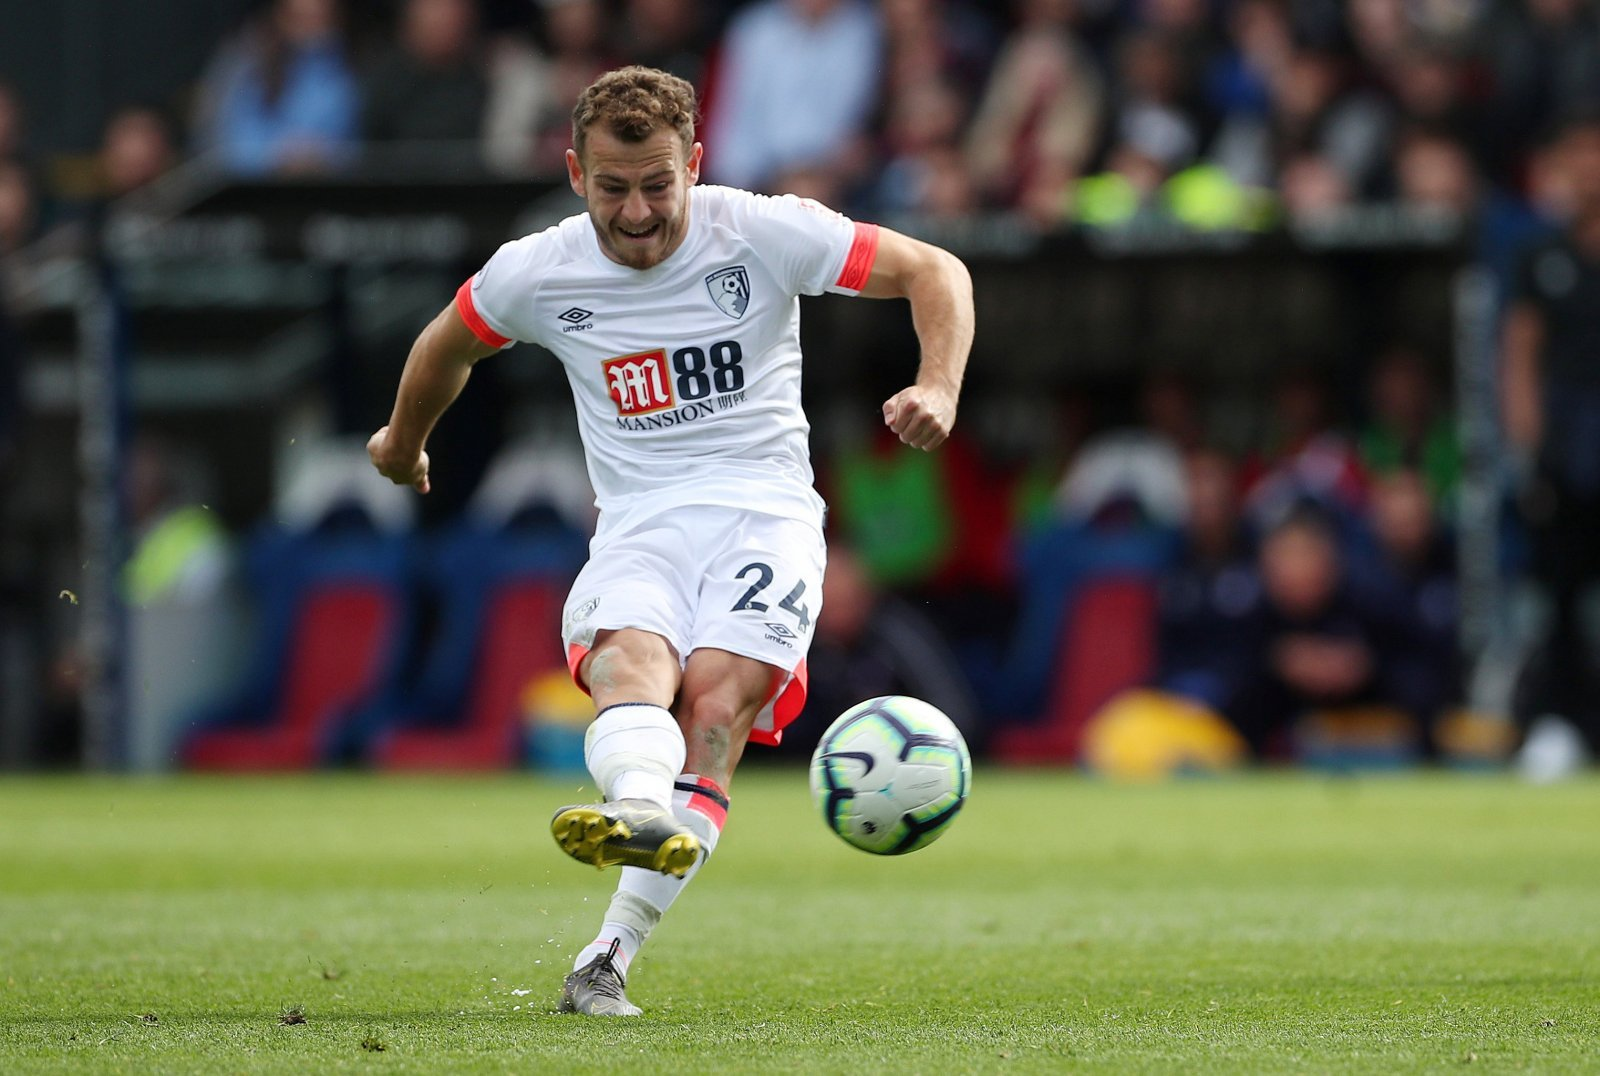 Bournemouth: Ryan Fraser would be crazy to choose Tottenham over Arsenal this summer